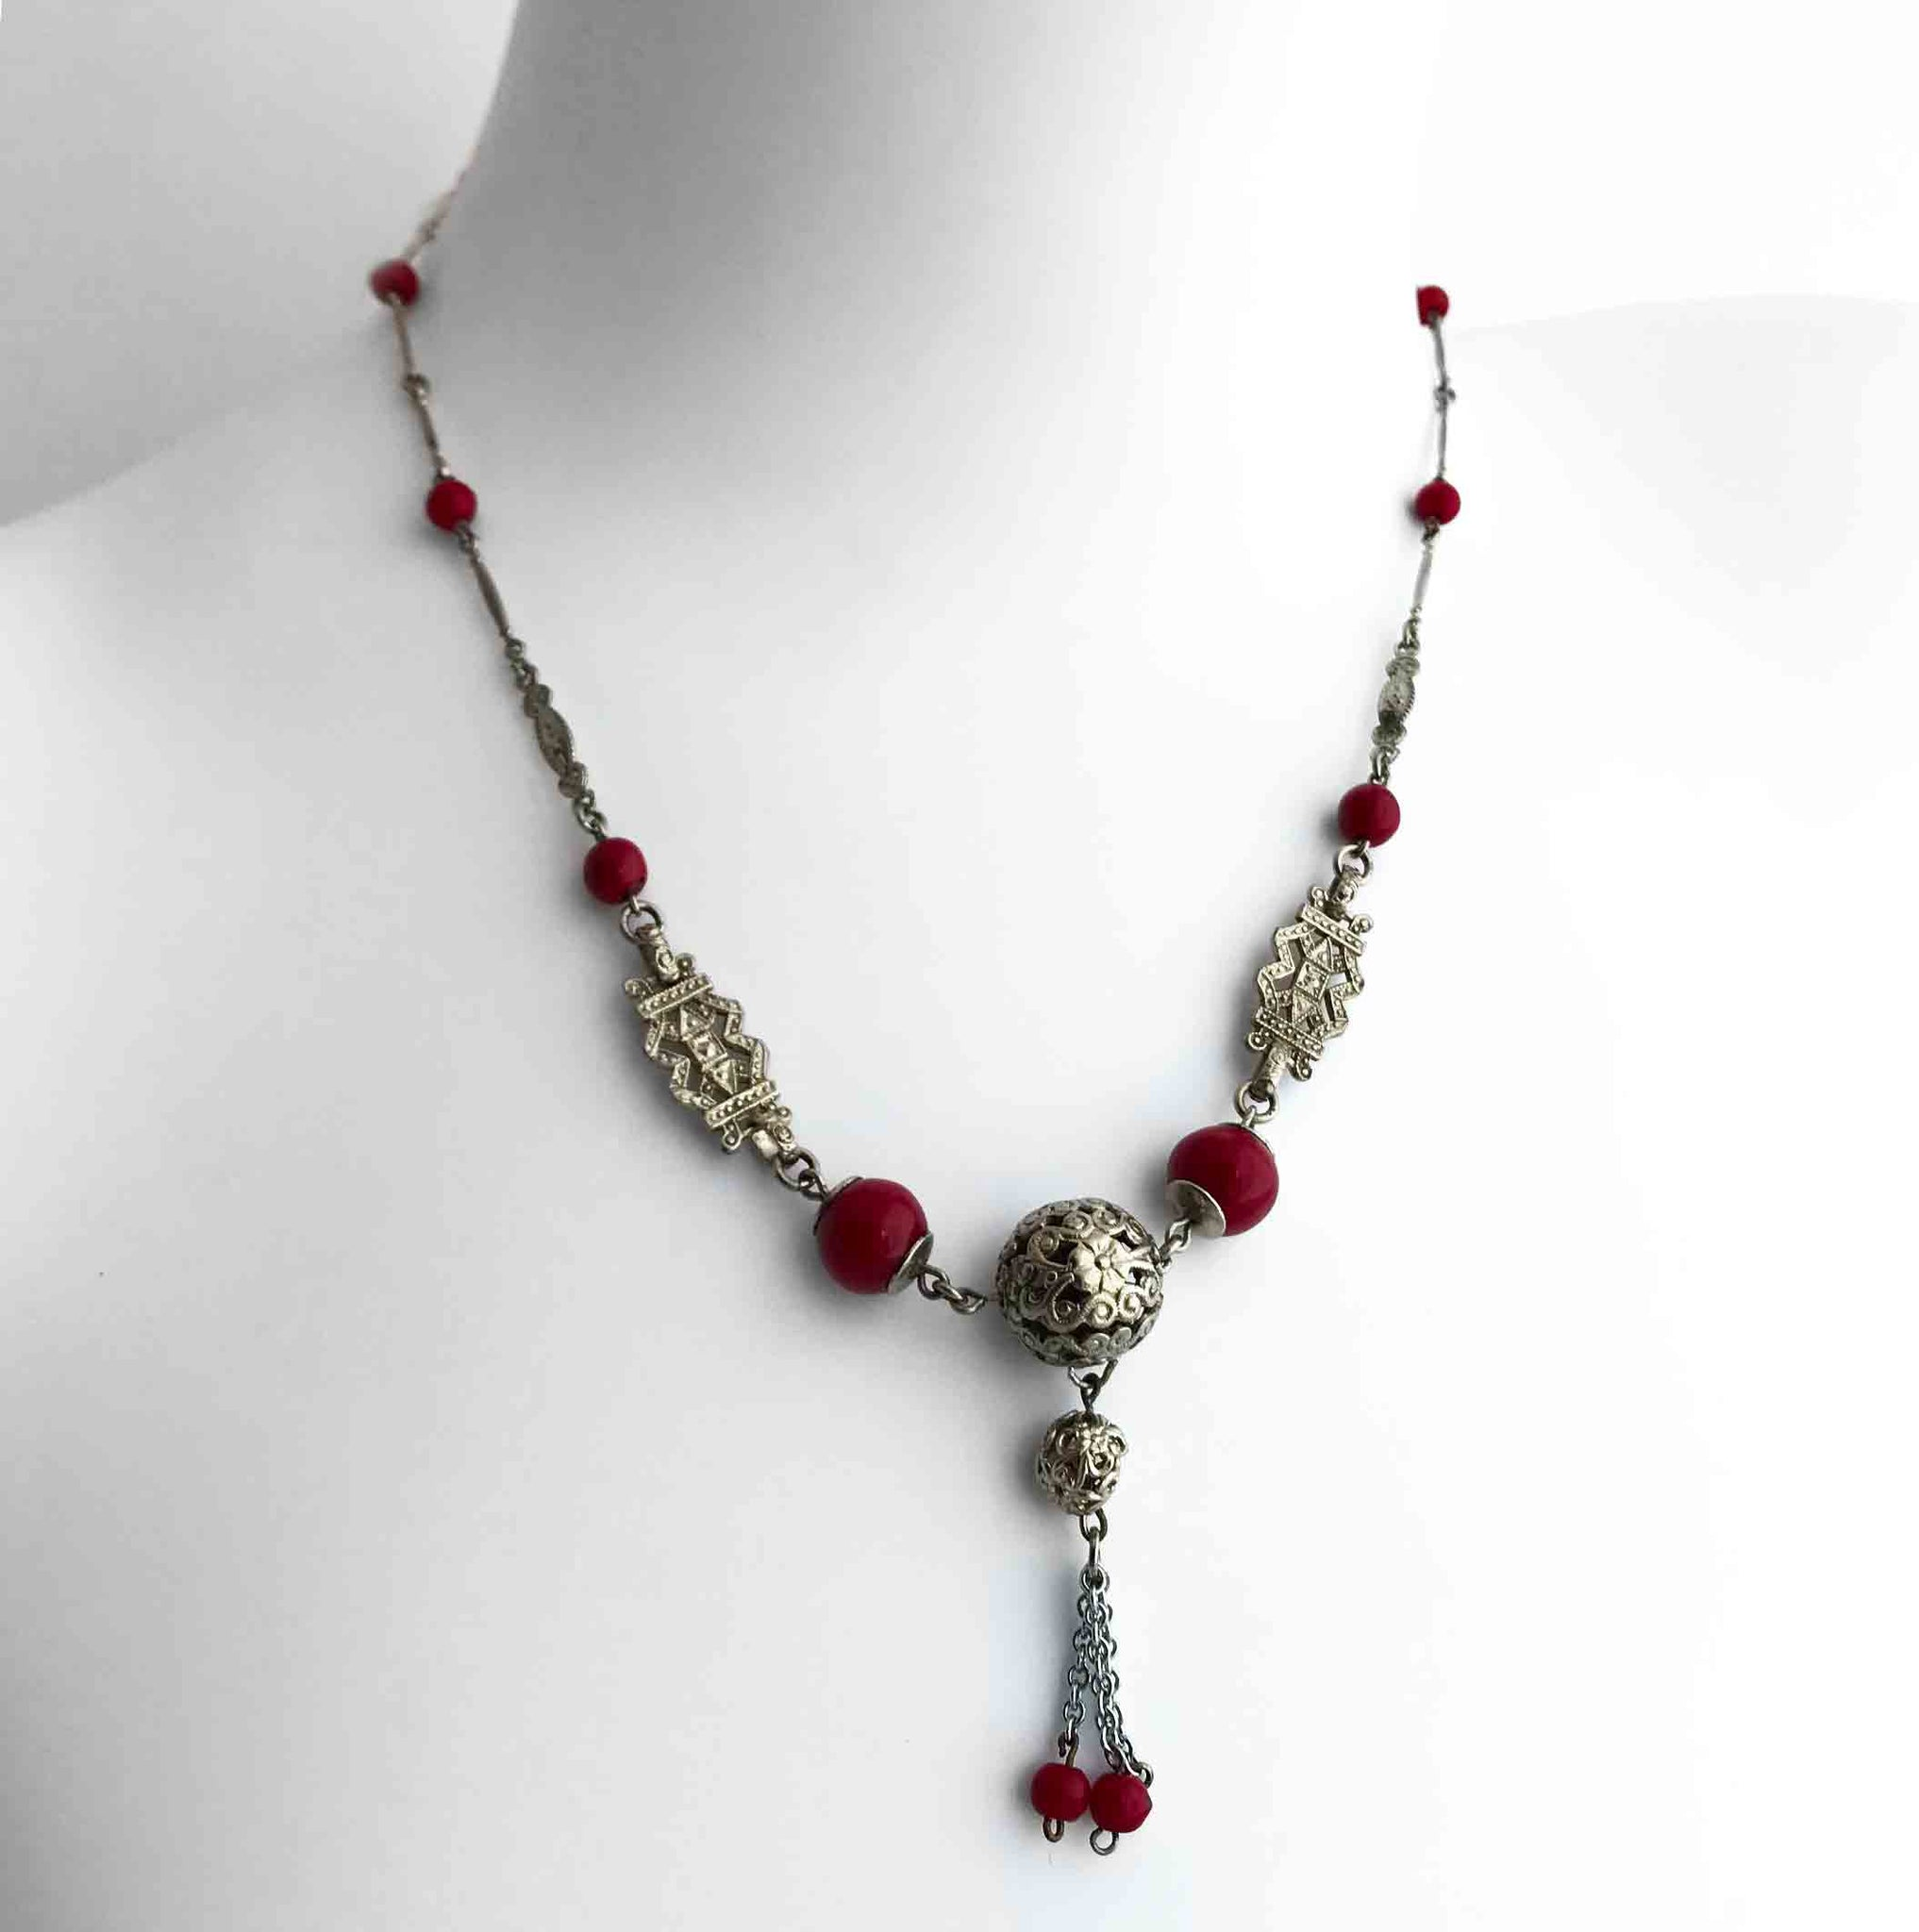 Vintage 1930's Art Deco Necklace. Find this and other Vintage jewellery for sale at Intovintage.co.uk. Into Vintage